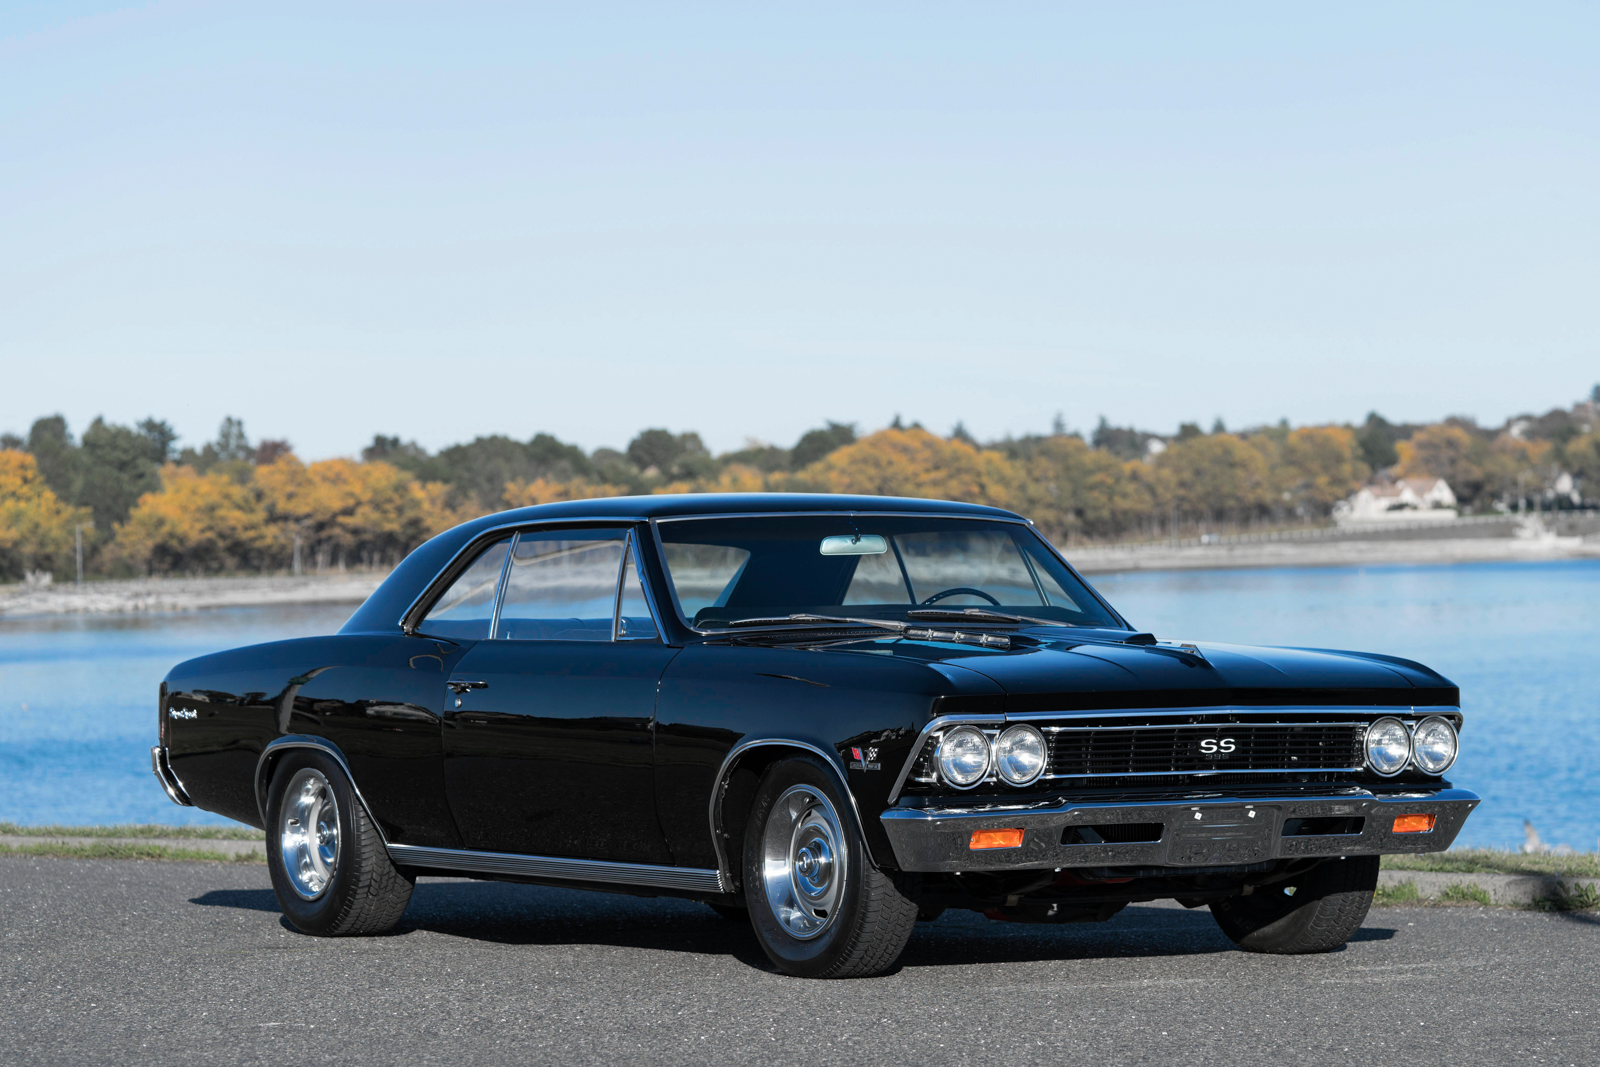 Muscle Cars For Sale >> 1966 Chevrolet Chevelle SS 396 Tribute - Silver Arrow Cars Ltd.